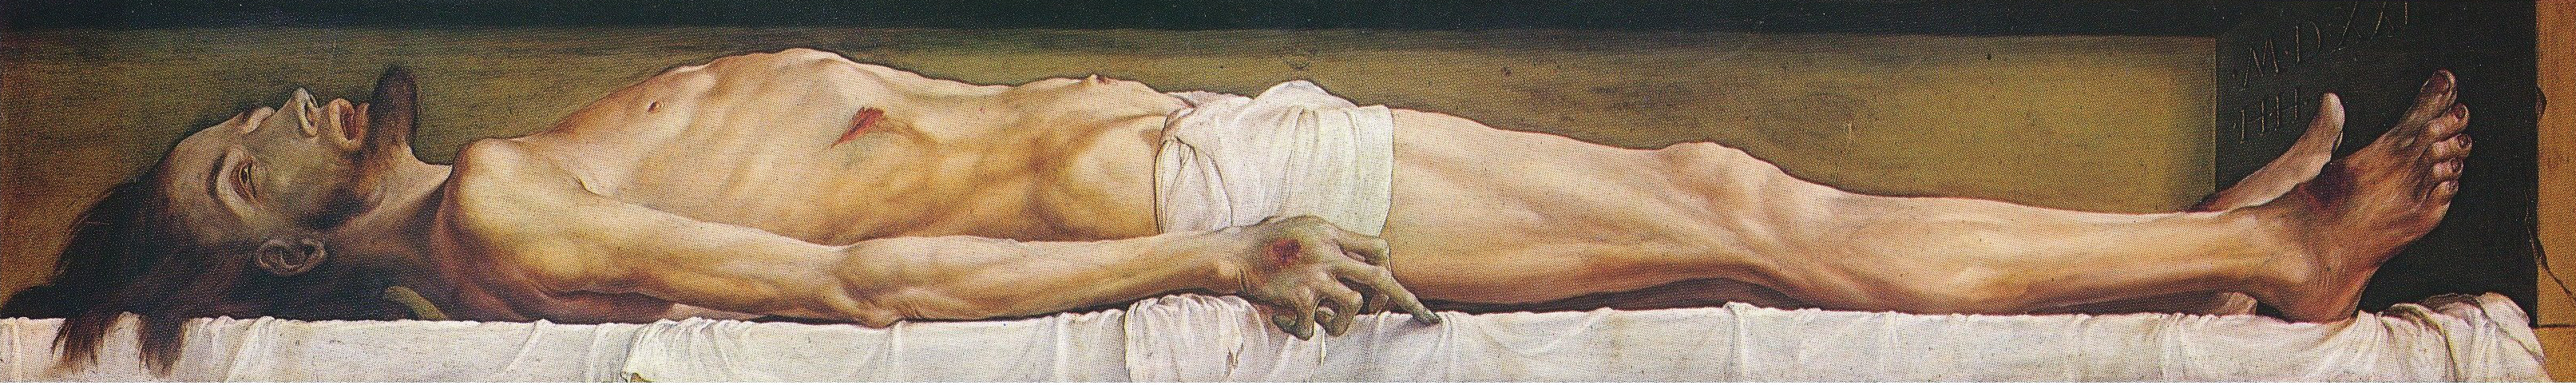 Hans Holbein- The Body of the Dead Christ in t...